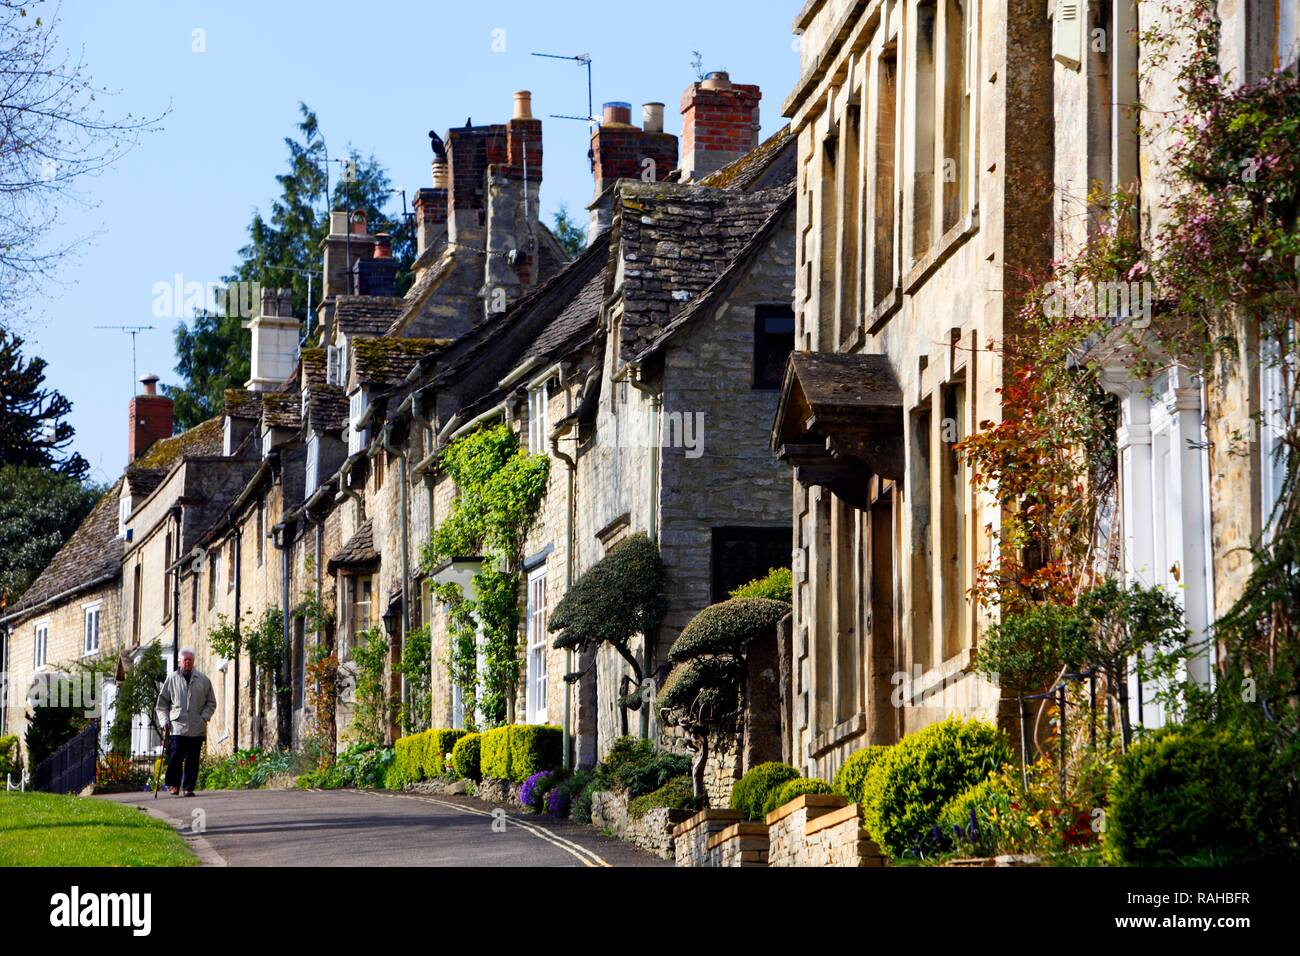 Row of old stone houses on High Street, Burford, Oxfordshire, United Kingdom, Europe - Stock Image